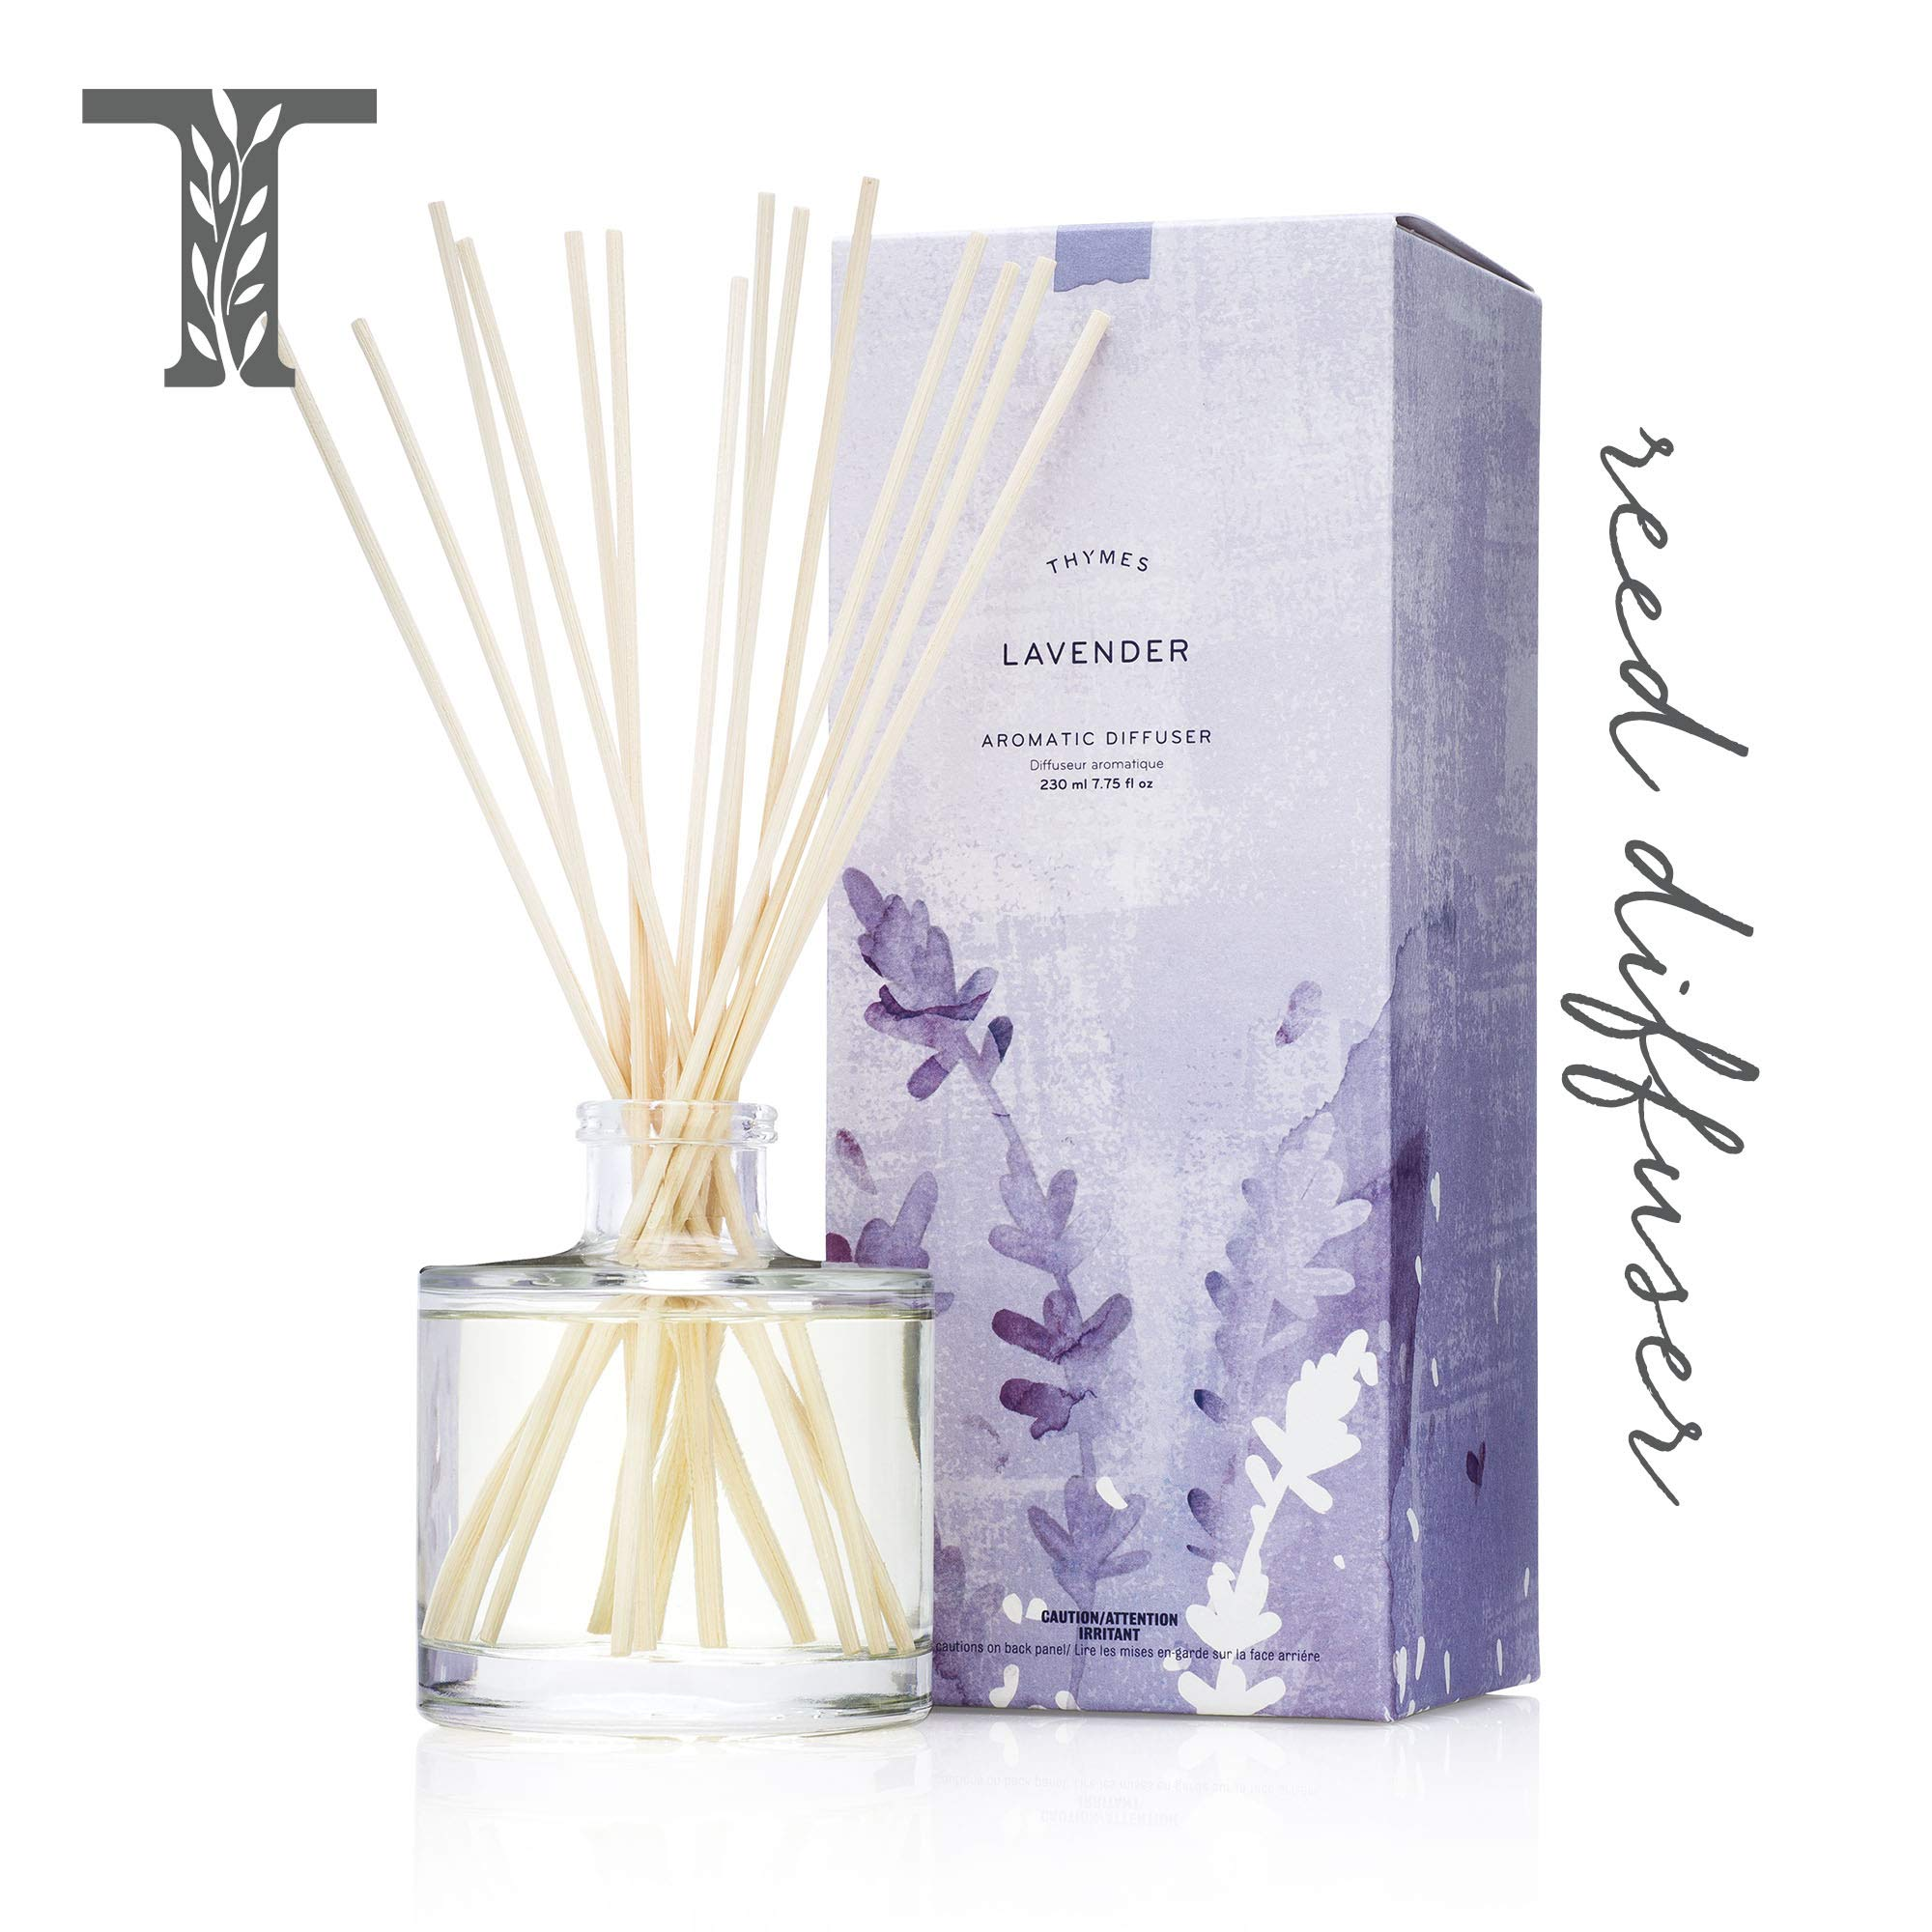 Thymes - Lavender Aromatic Oil Reed Diffuser - Gift Set with Premium Sticks, Glass Bottle and Scented Oil - 6.5 oz by Thymes